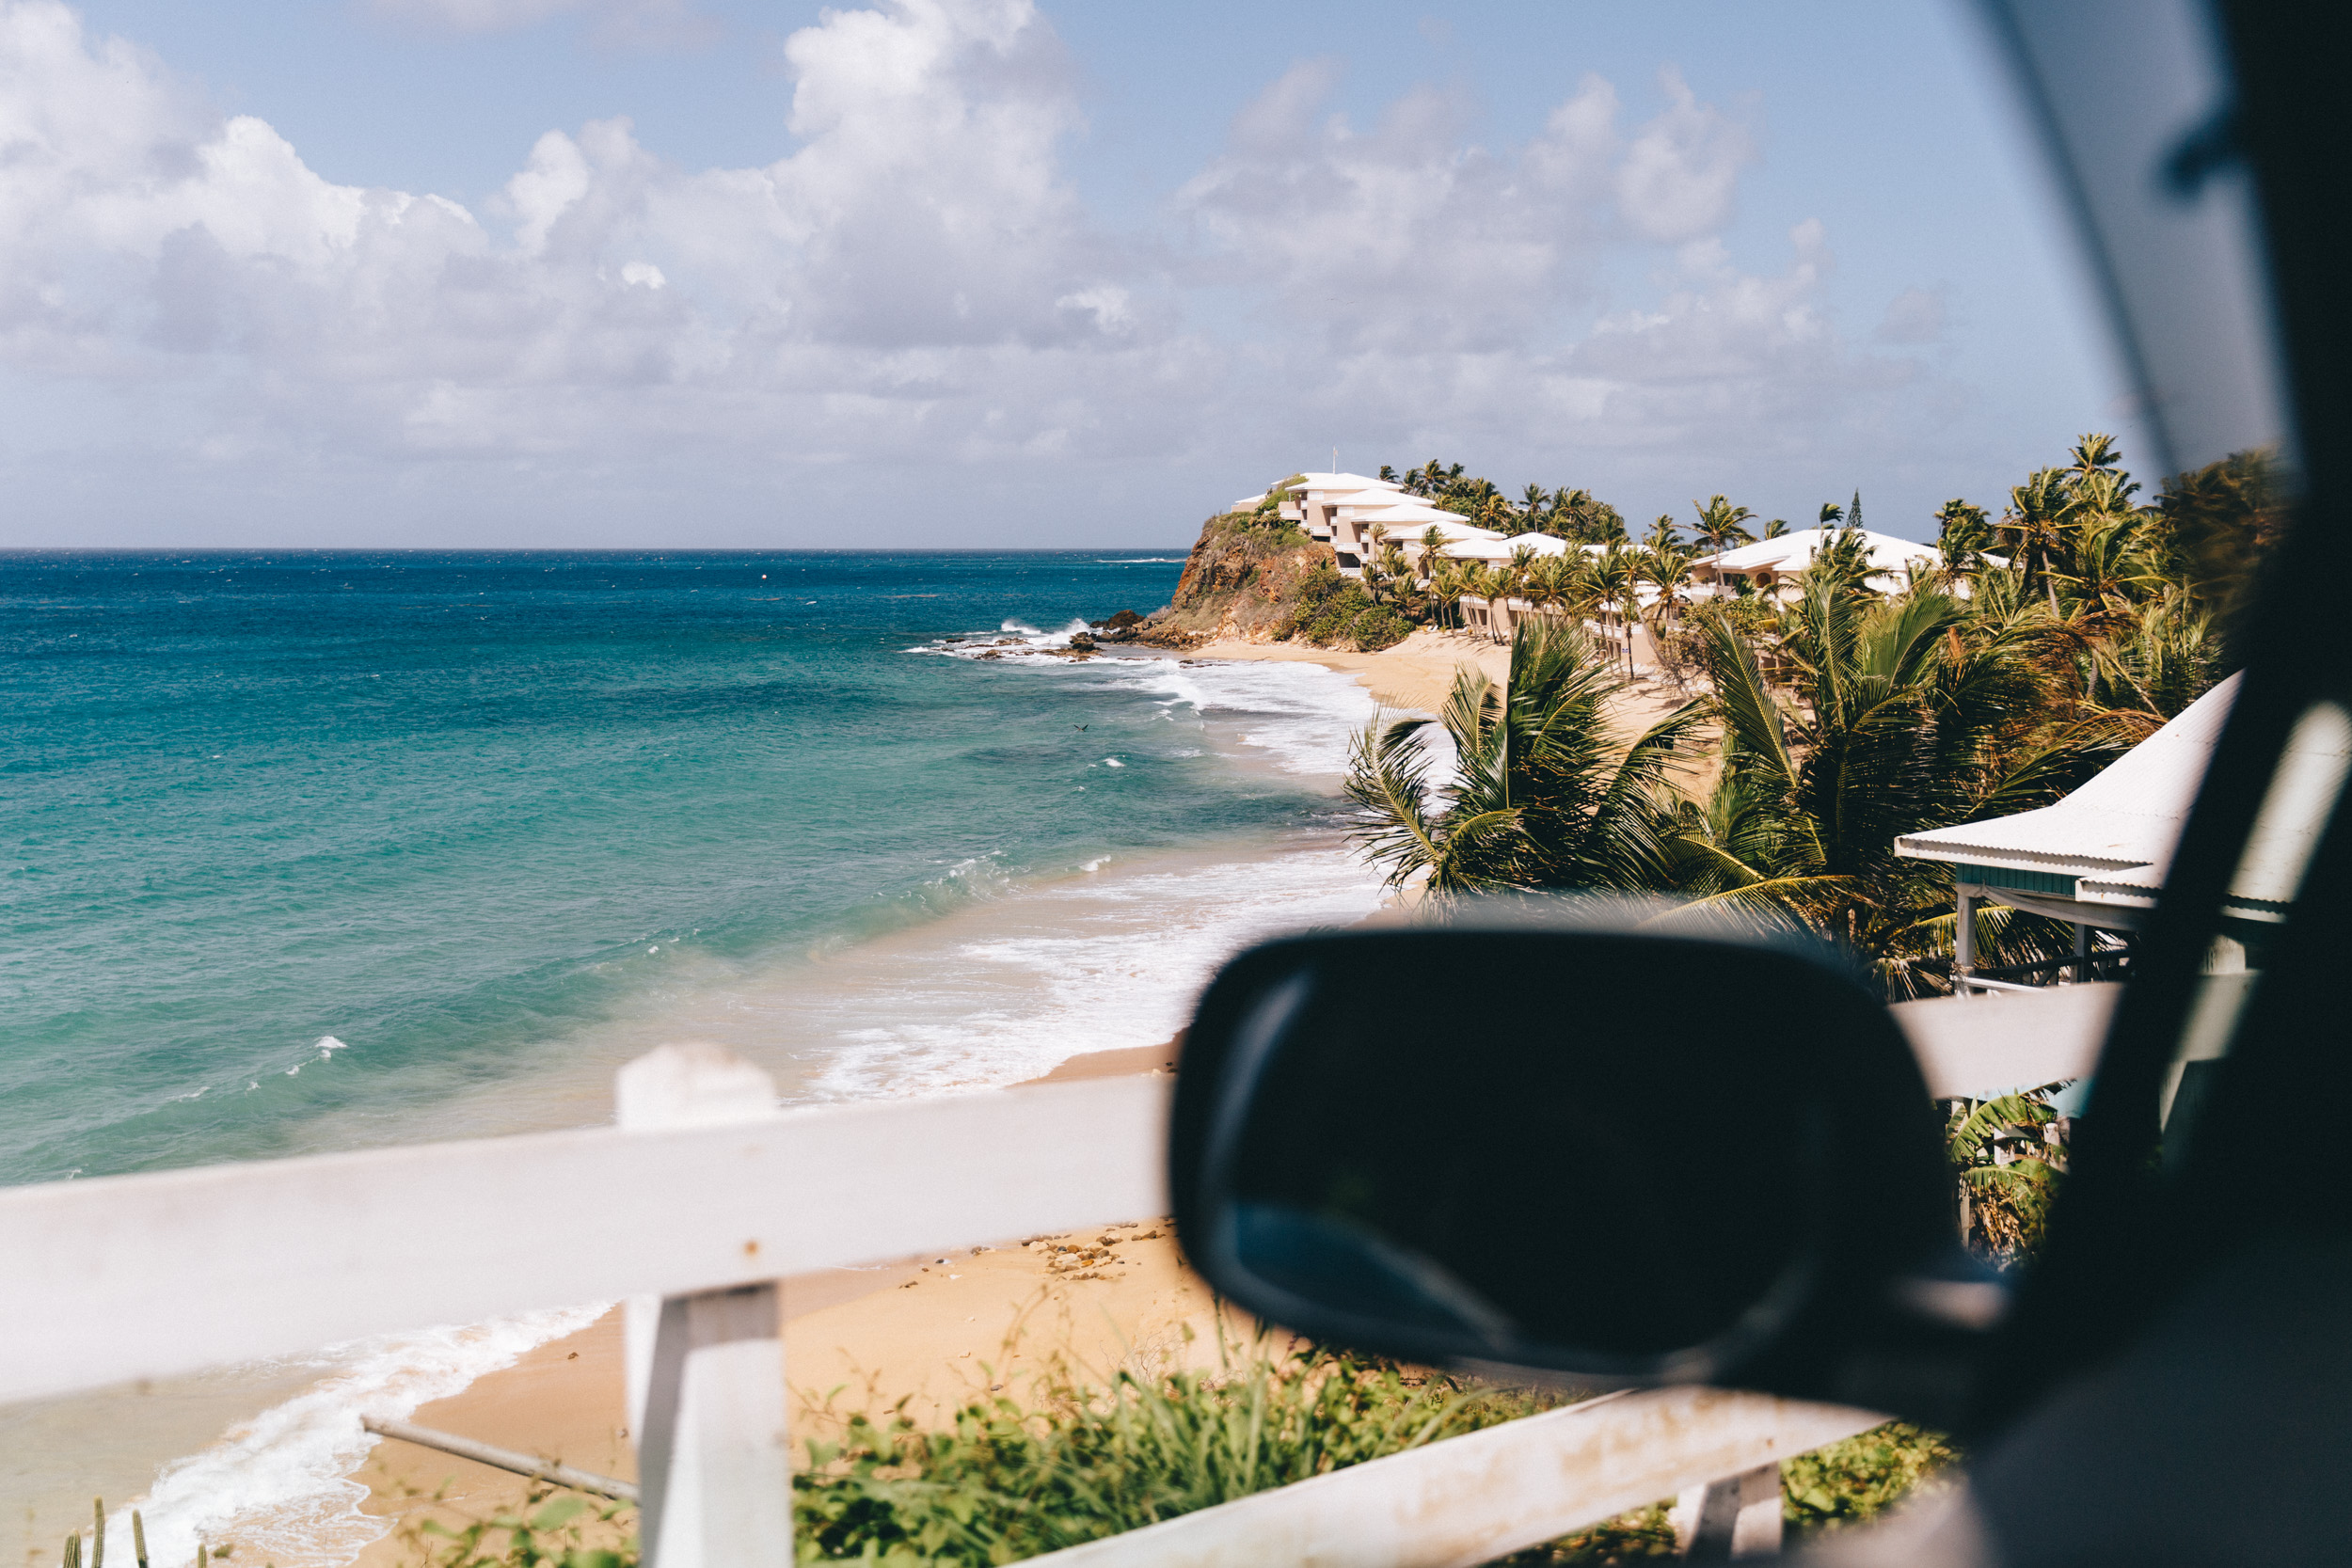 10 Things To Know Before Renting A Car In Antigua Along Dusty Roads